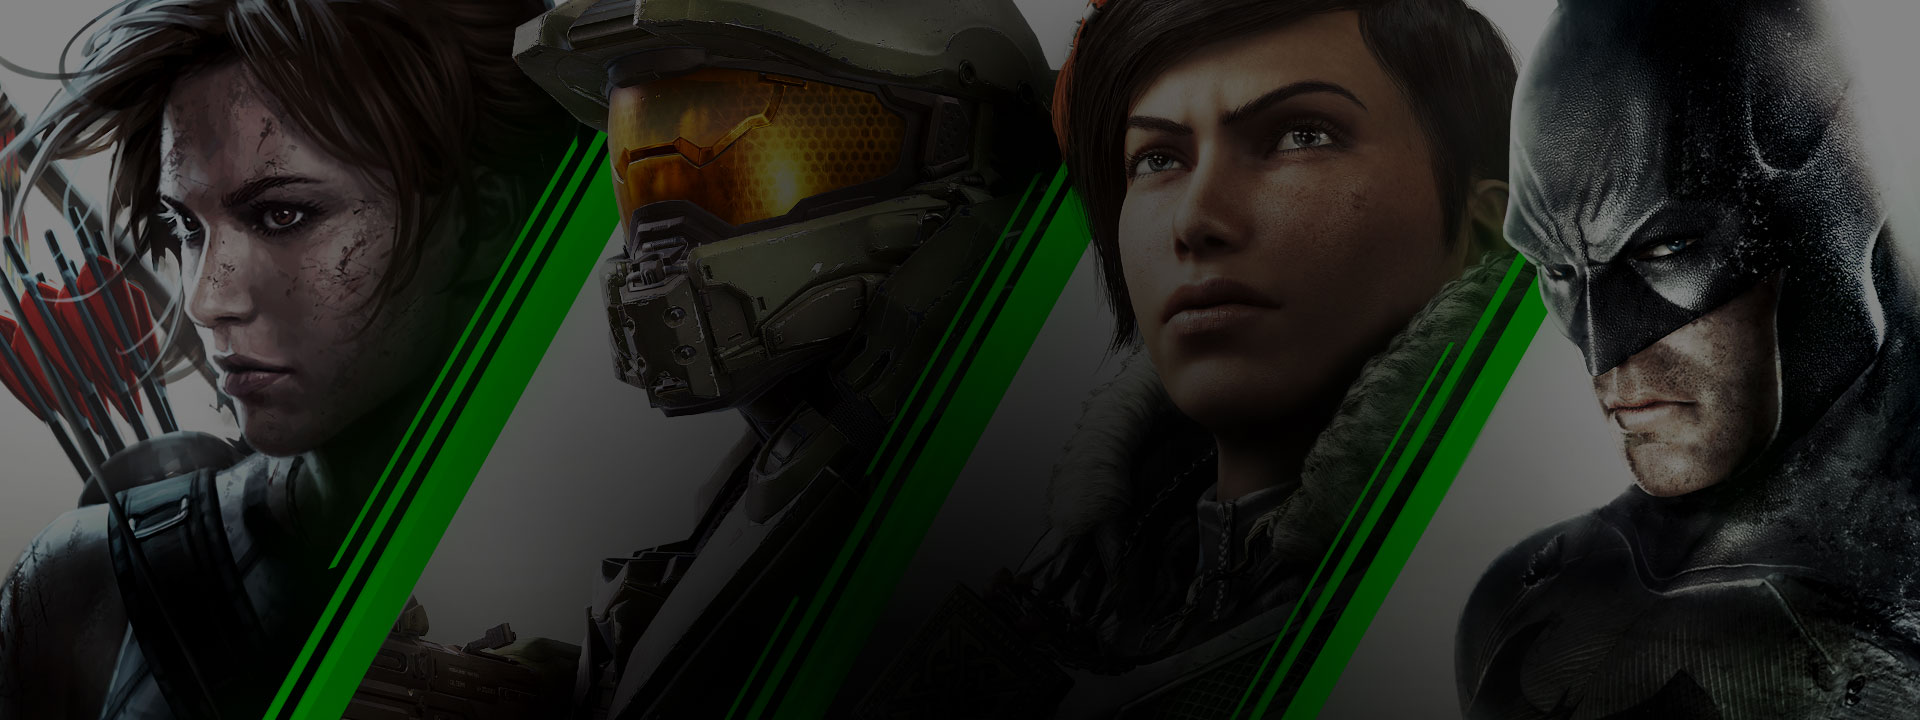 Een collage van personages uit Xbox One-games. Lara Croft, Master Chief, Kait Diaz en Batman.